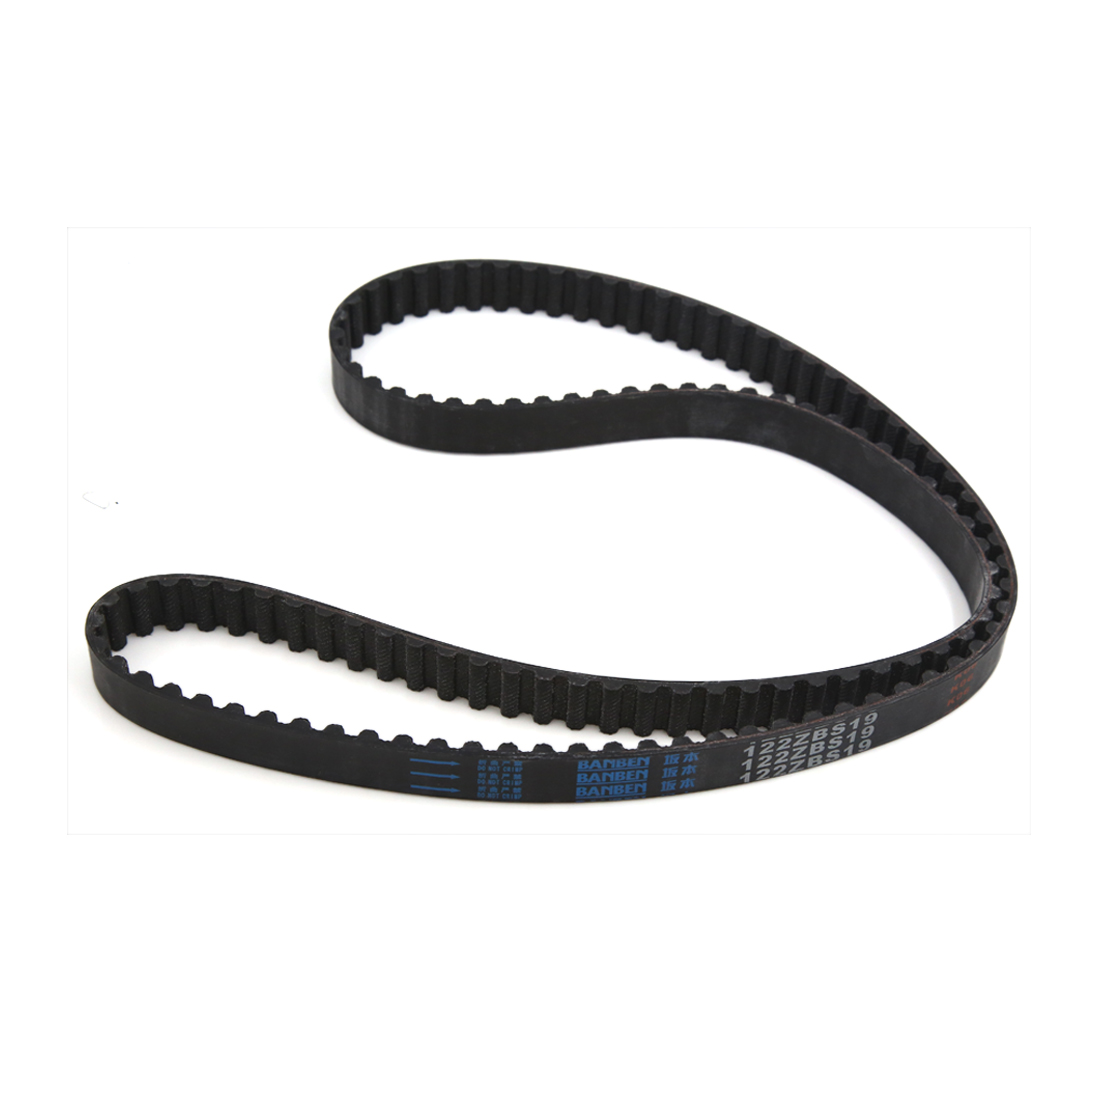 19mm Width Alternator A/C Power Steering Serpentine Toothed Timing Belt 122ZBS19 for Mitsubishi